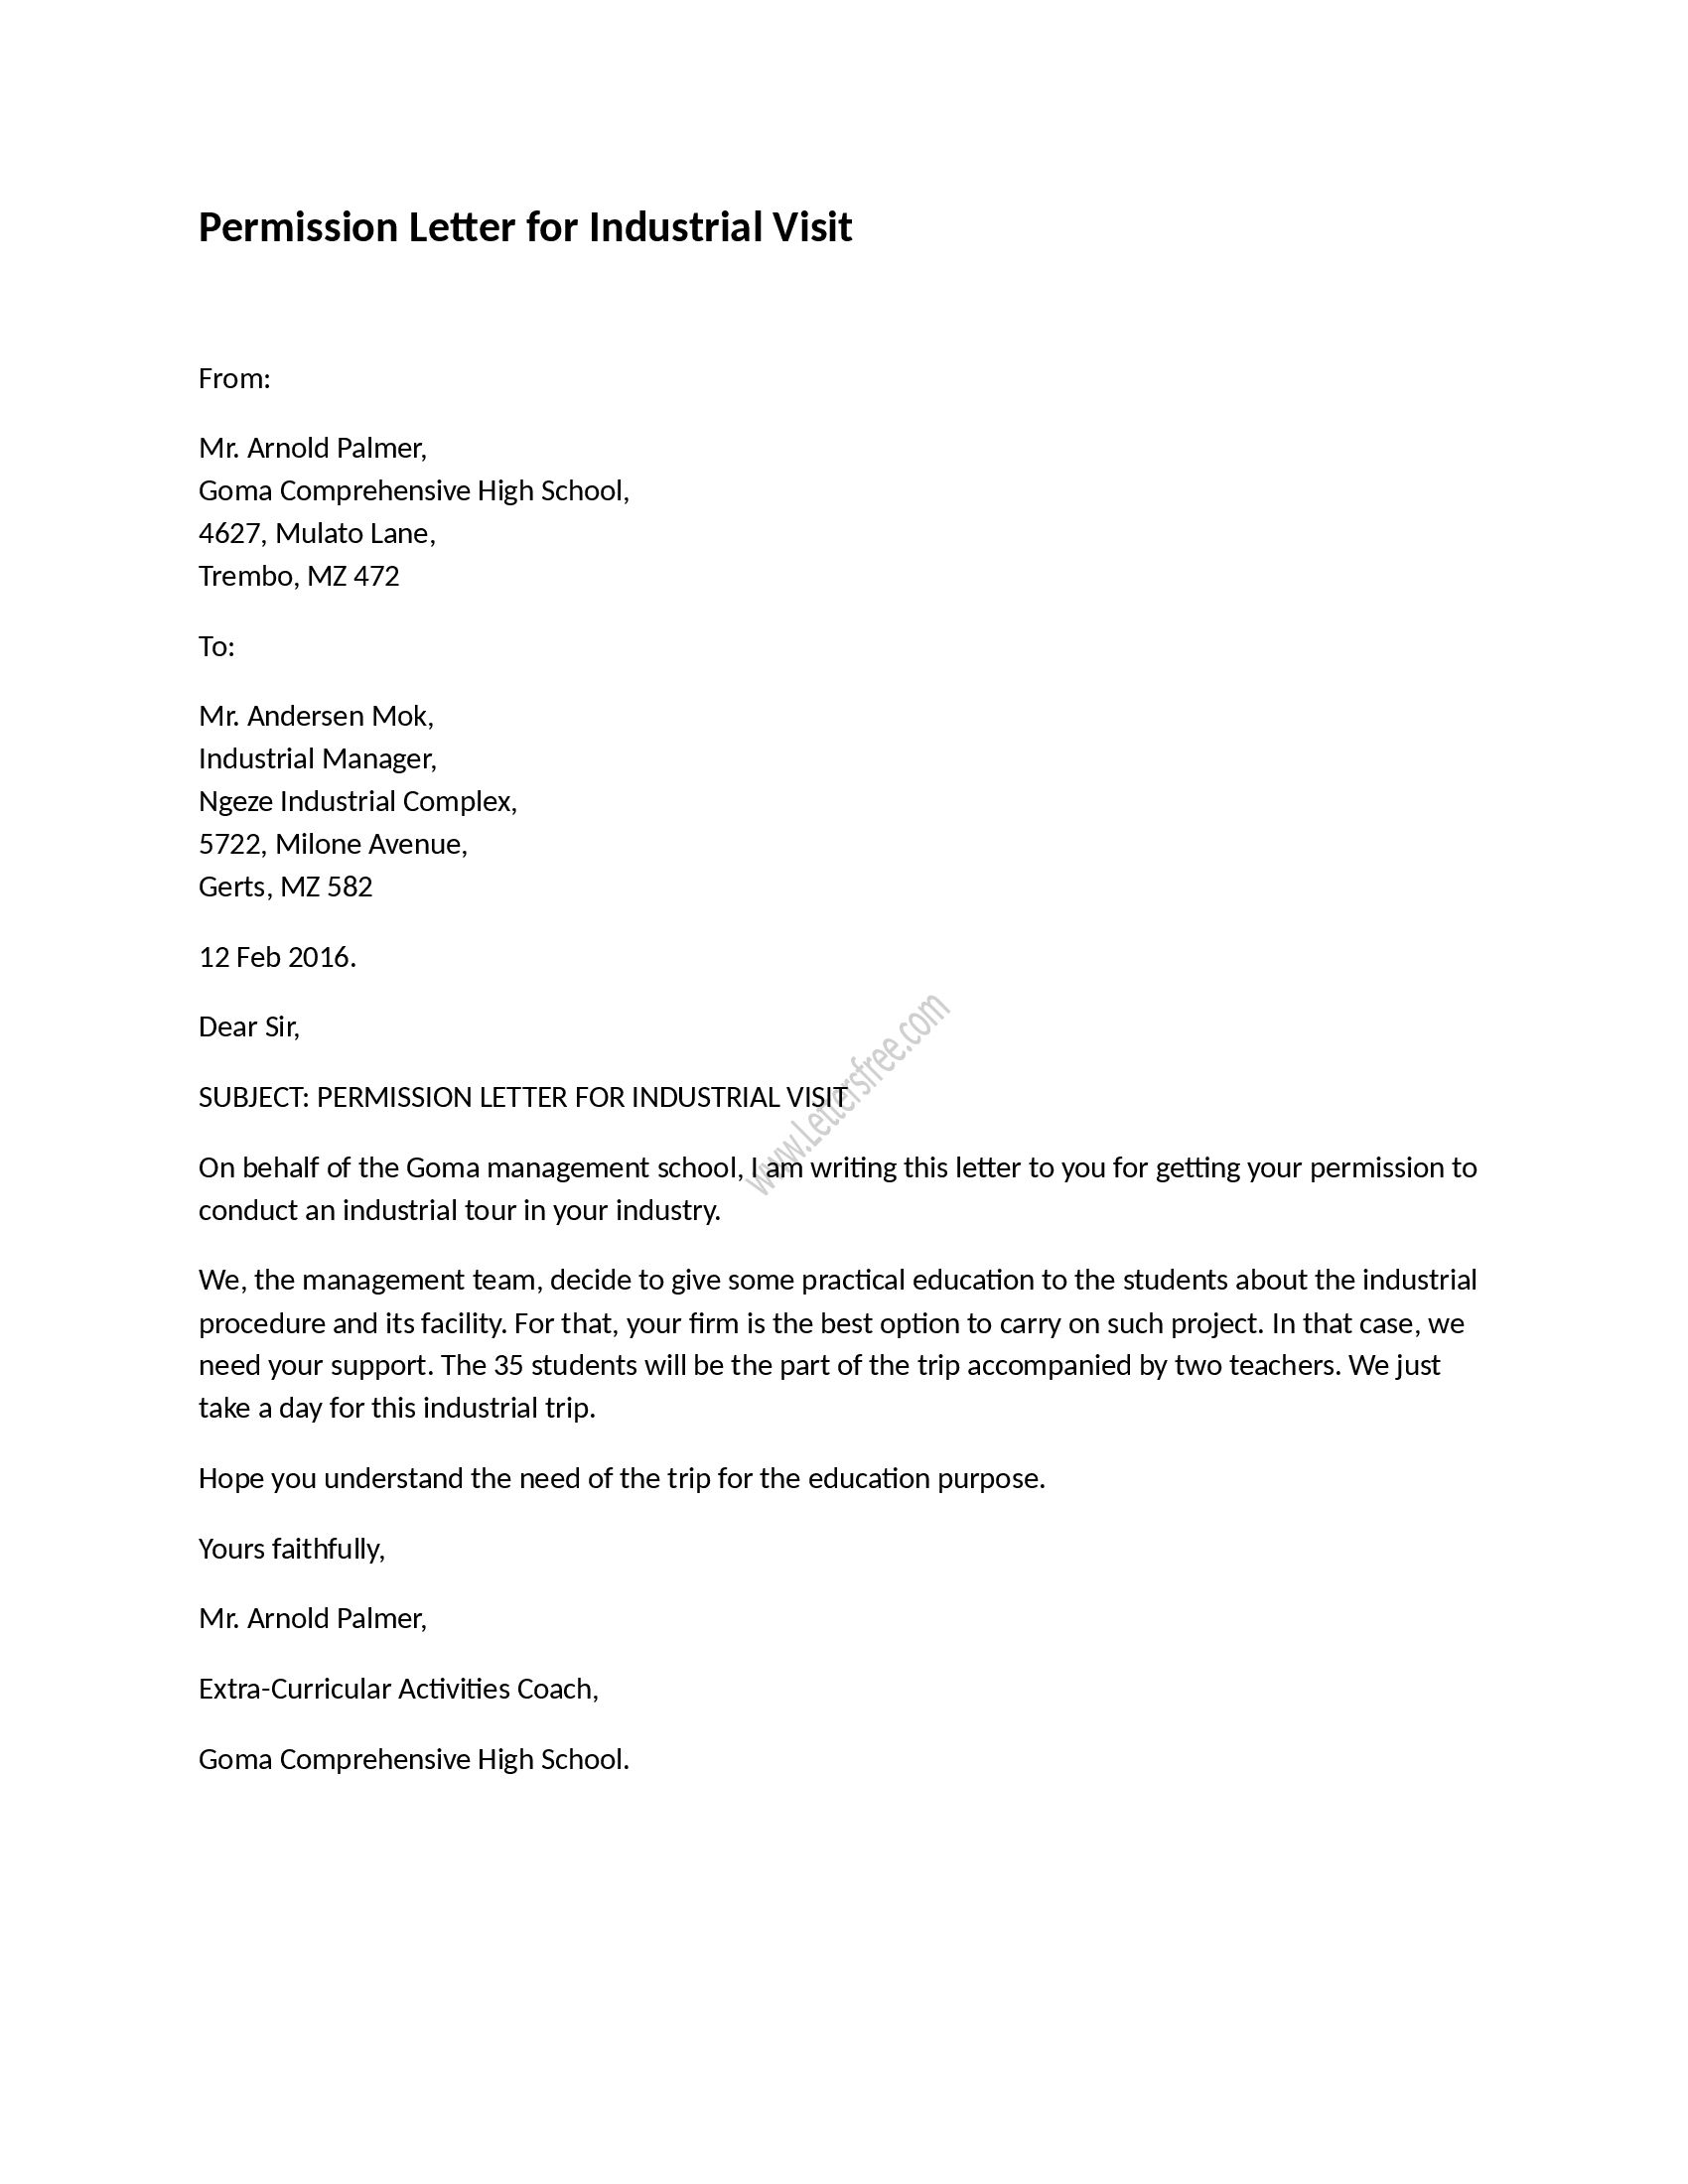 Bad Check Letter Template - Permission Letter for Industrial Visit Pinterest